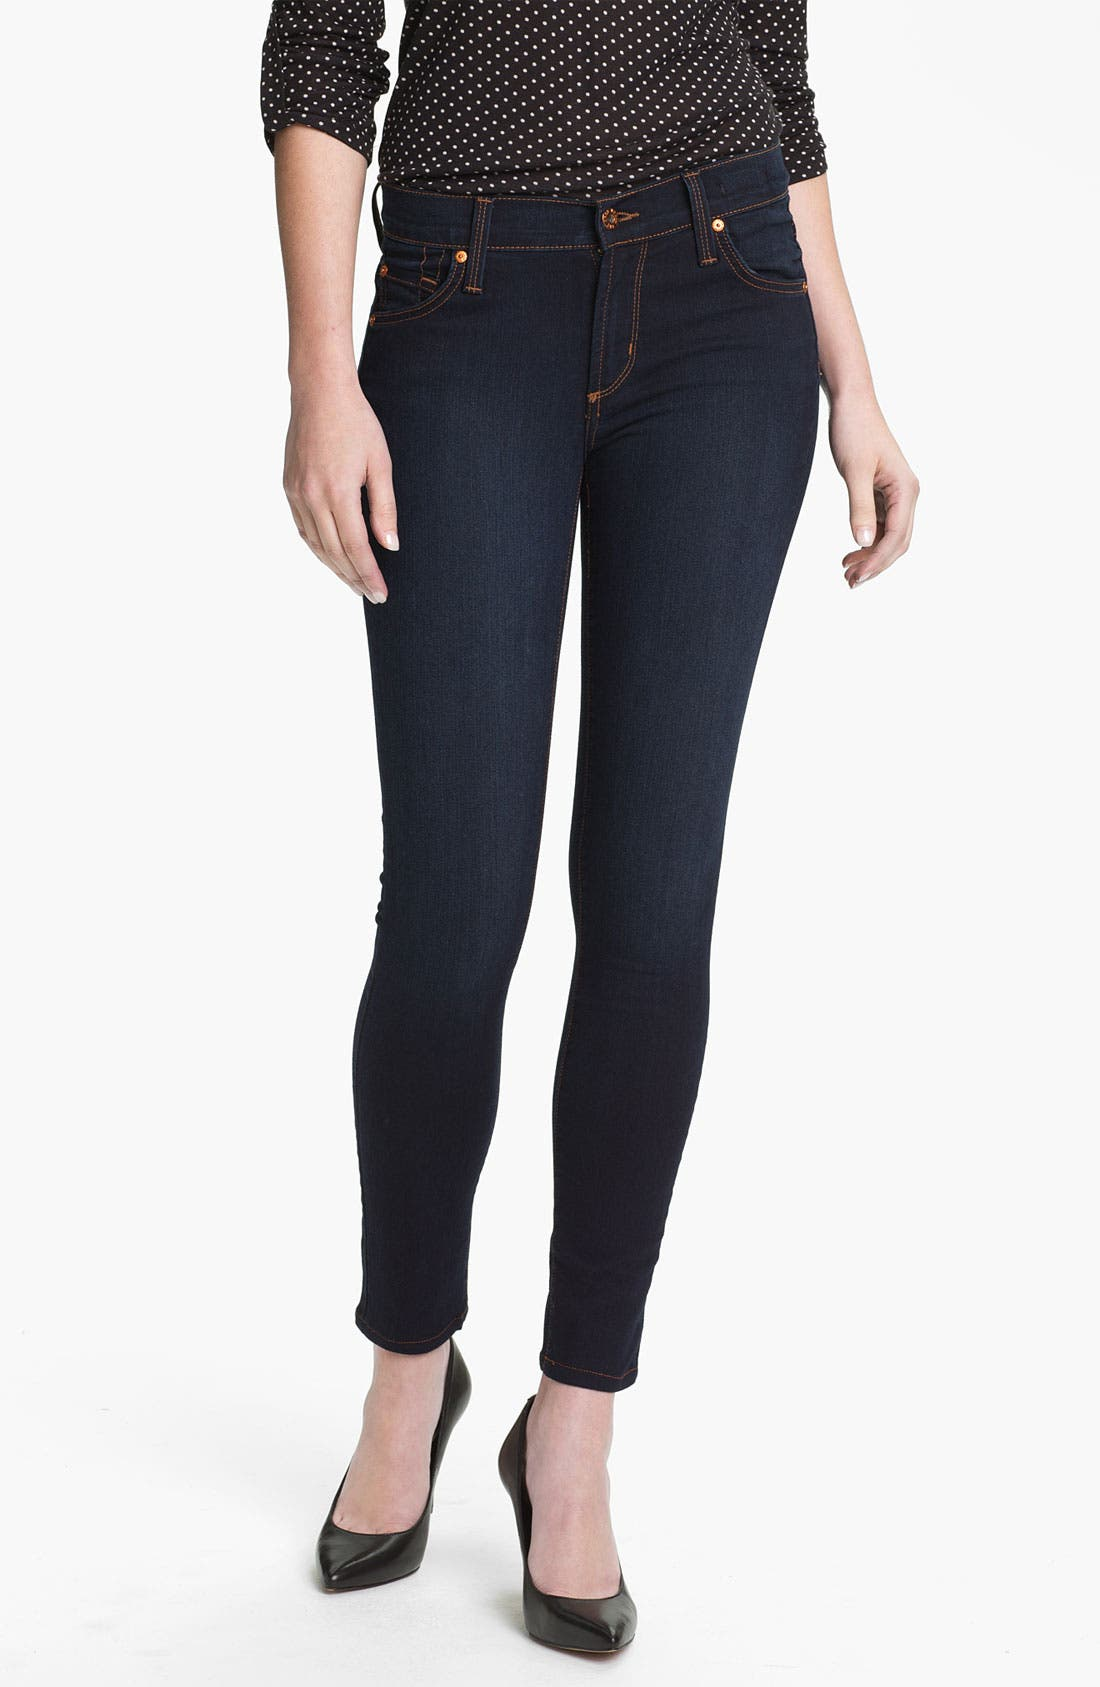 Alternate Image 1 Selected - James Jeans Stretch Denim Leggings (Petite) (Online Only)